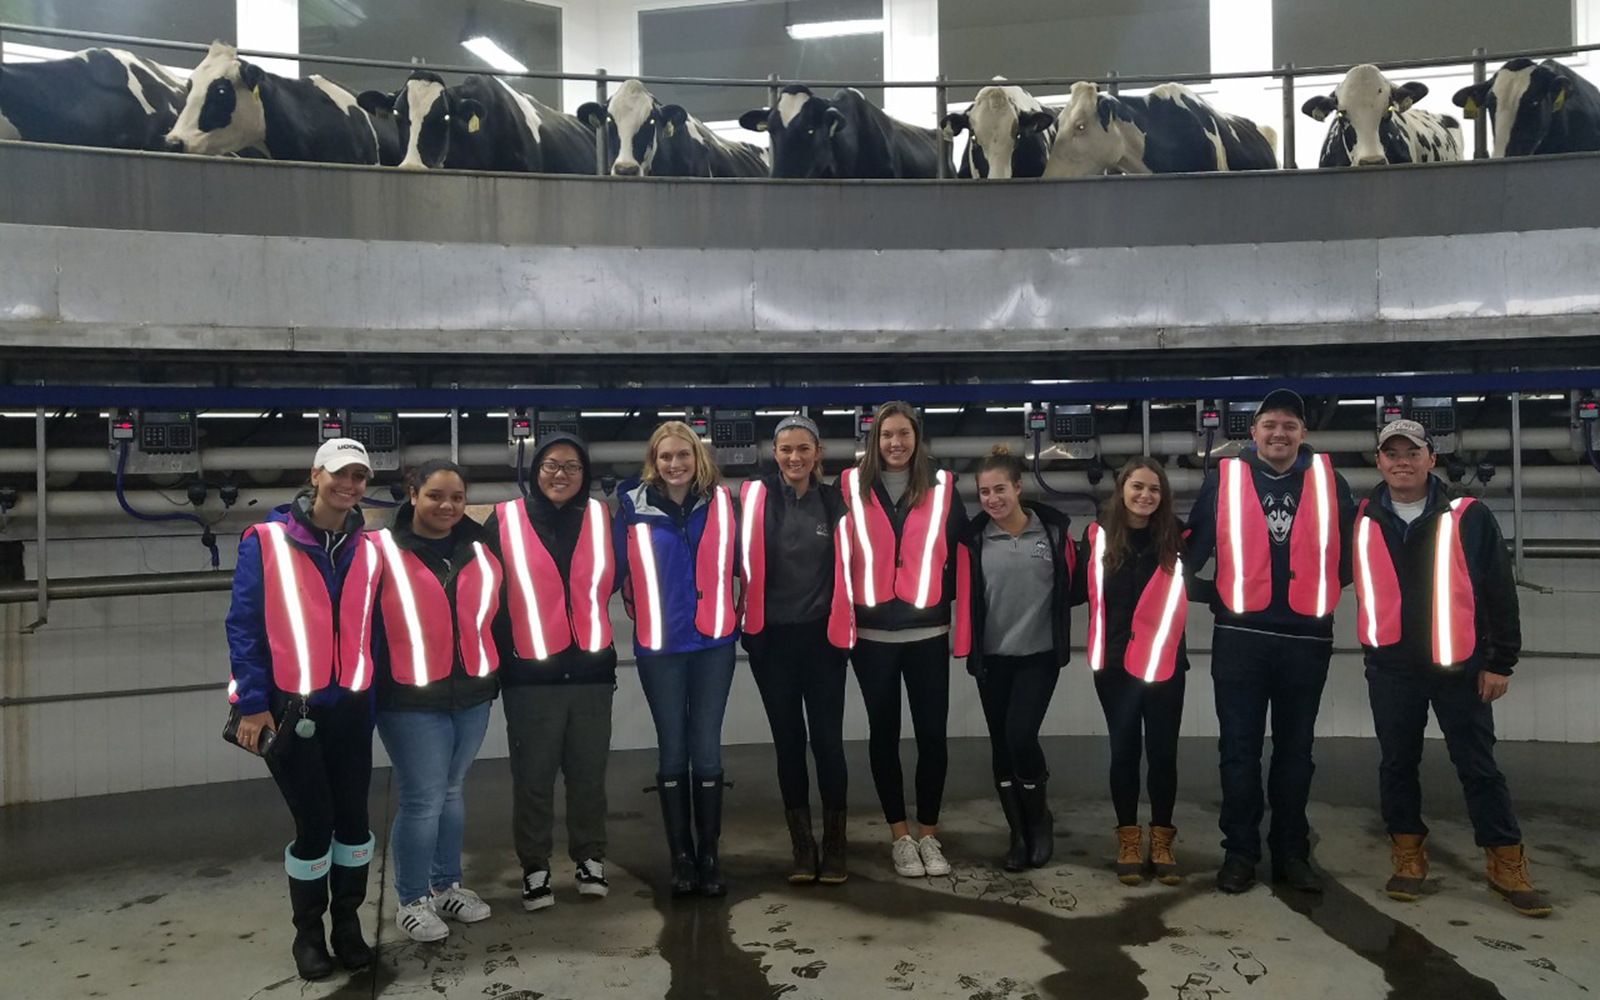 Marketing students at the Oakridge Dairy Farm in Ellington, Conn. (Seth Bahler/Oakridge Dairy)